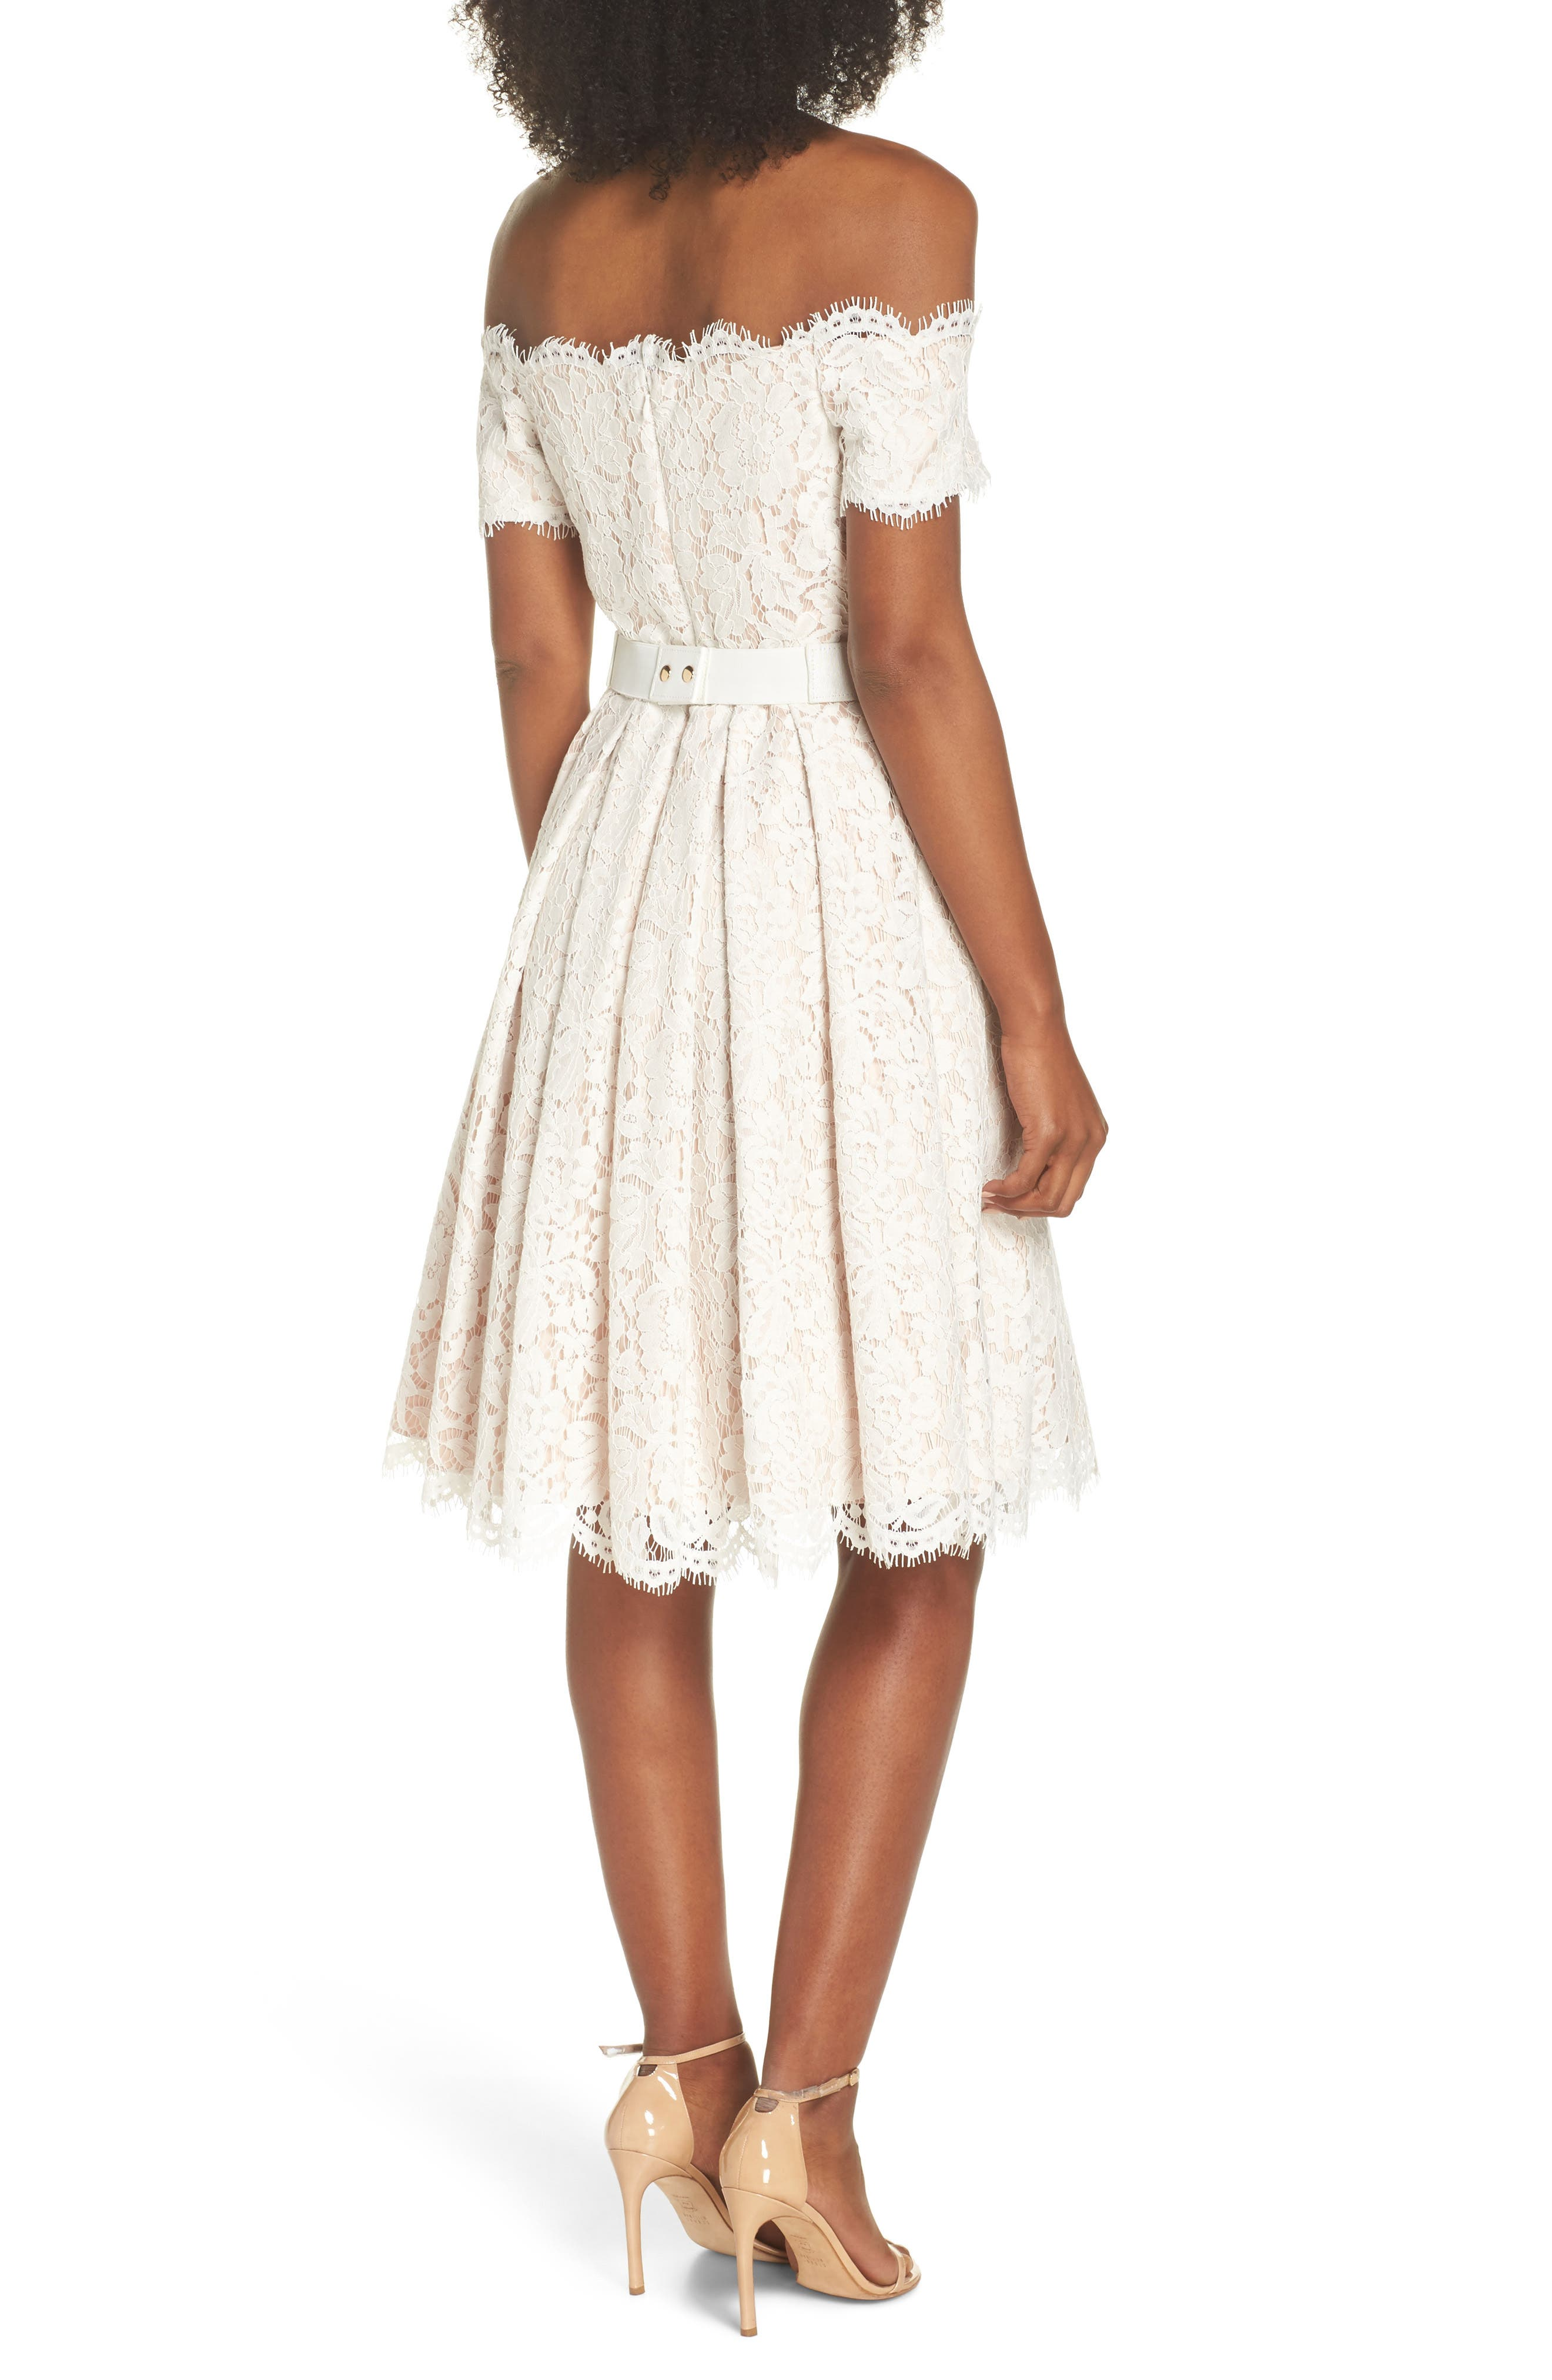 DRESSES - Short dresses Henry Cotton</ototo></div>                                   <span></span>                               </div>             <div>                                     <div>                                             <div>                                                     <div>                                                             <ul>                                                                     <li></li>                                                                     <li>                                                                             <ul>                                                                                     <li>                                             <a href=